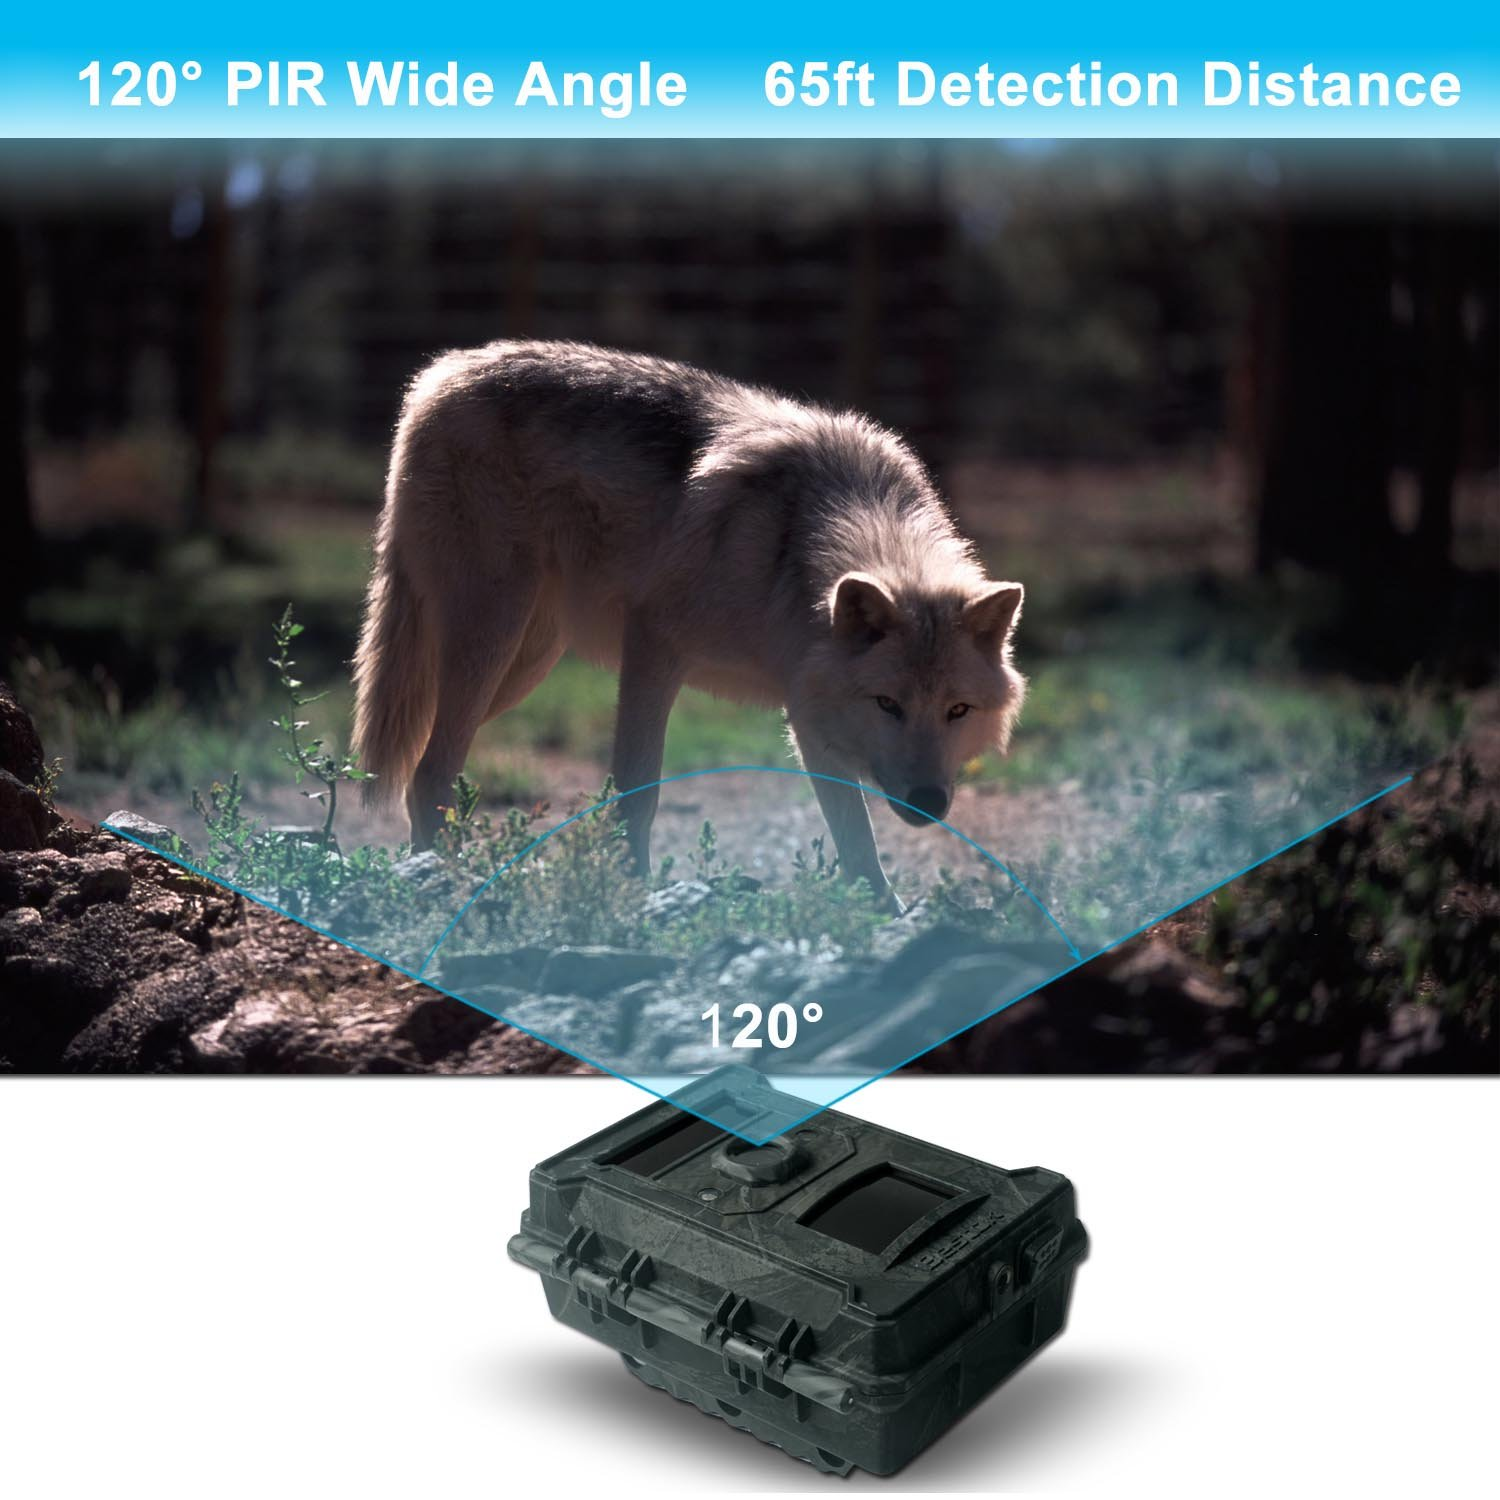 Bestok Trial Camera 12MP 120° HD Wildlife Hunting Cam with Infrared LEDs Night Vision 65 ft/20m 2.4'' LCD Waterproof IP65 Game Camera for Wildlife & Home Security by Bestok (Image #3)